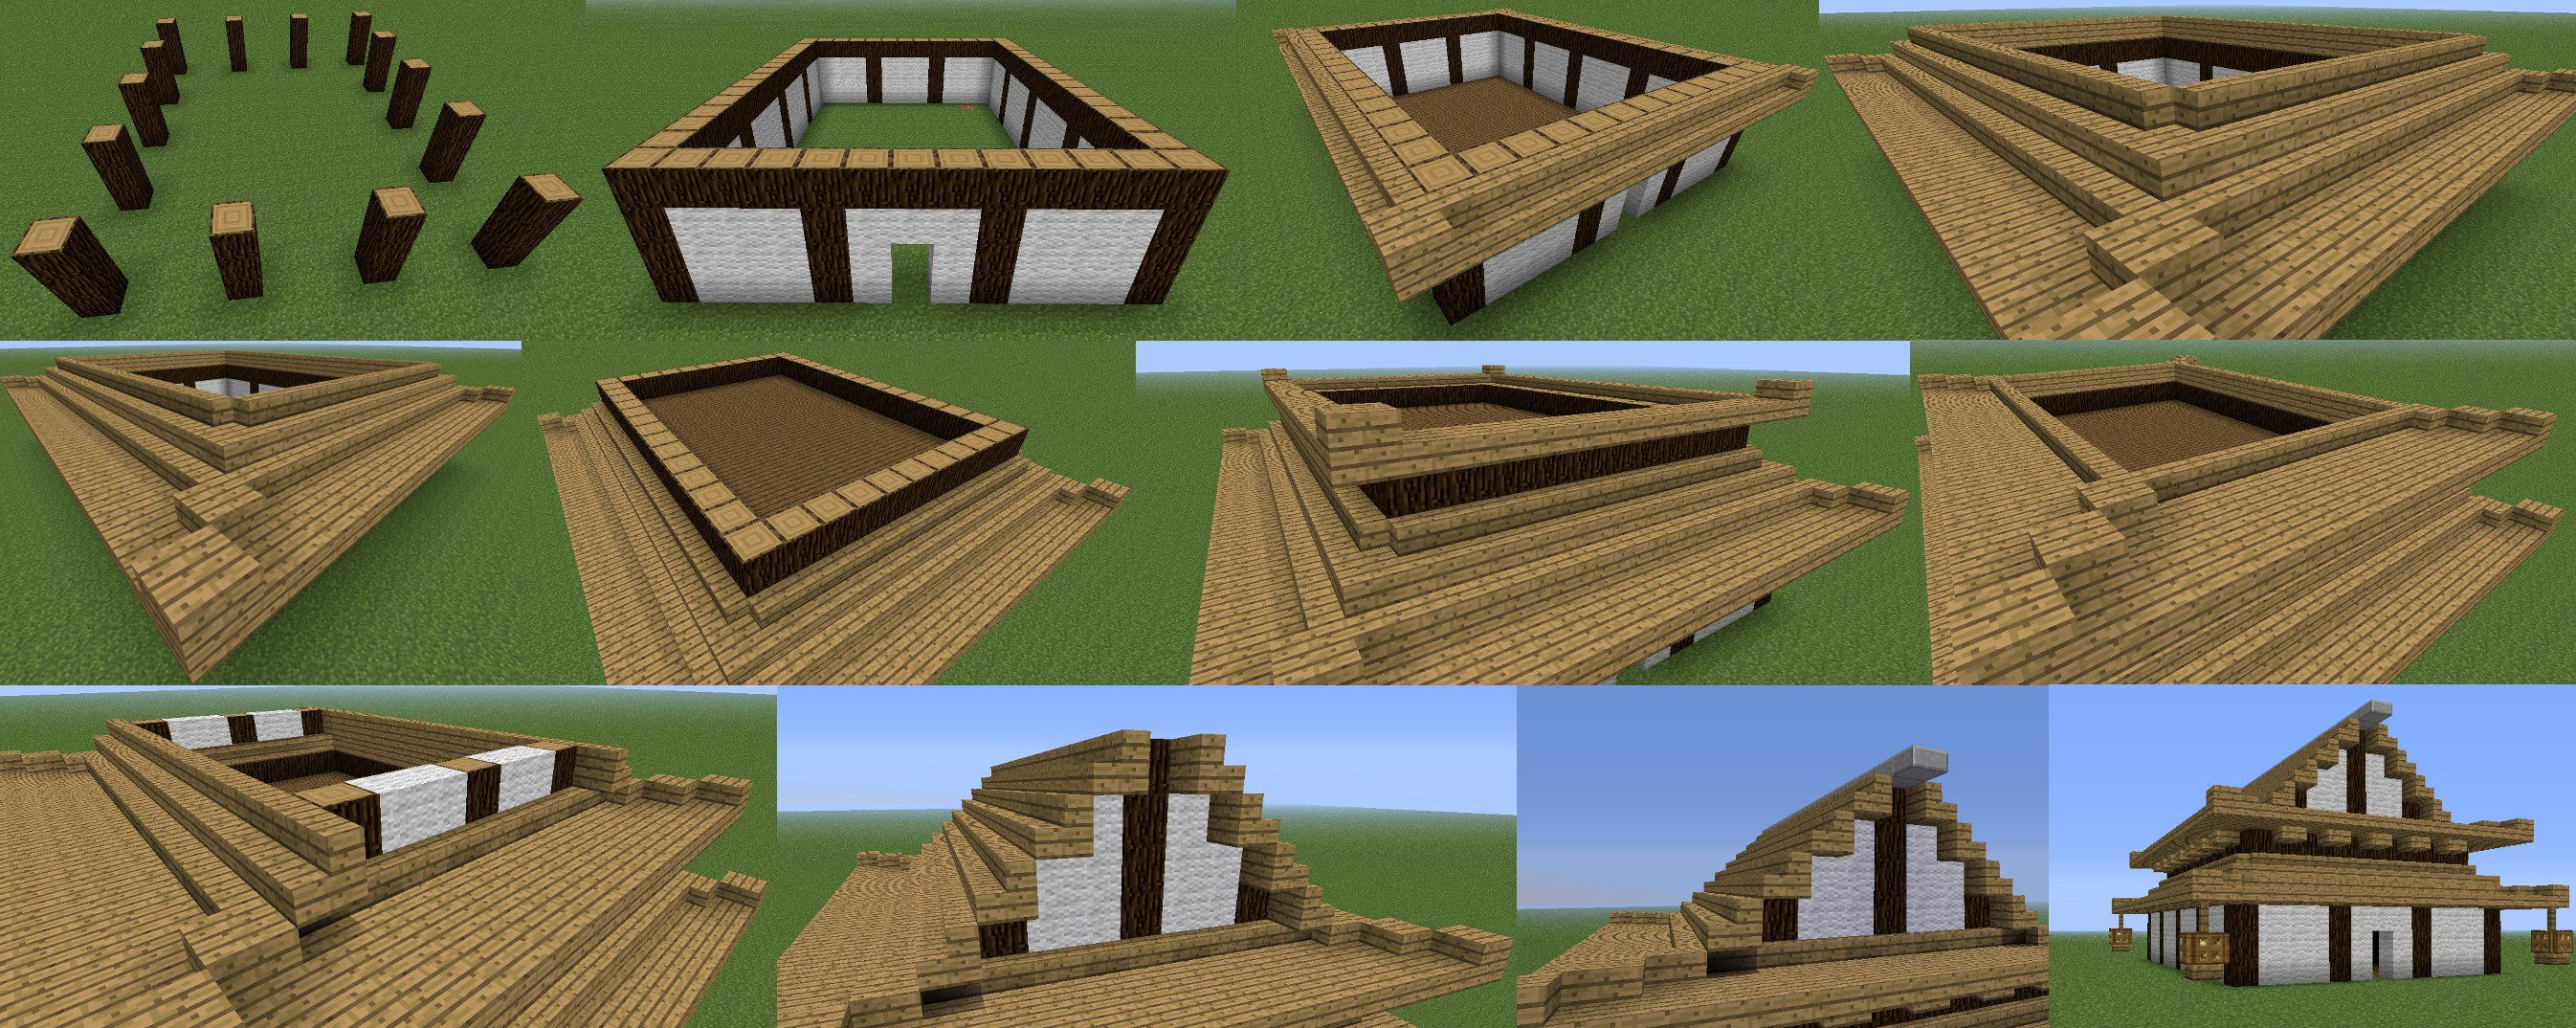 Japanese Building Style In Minecraft